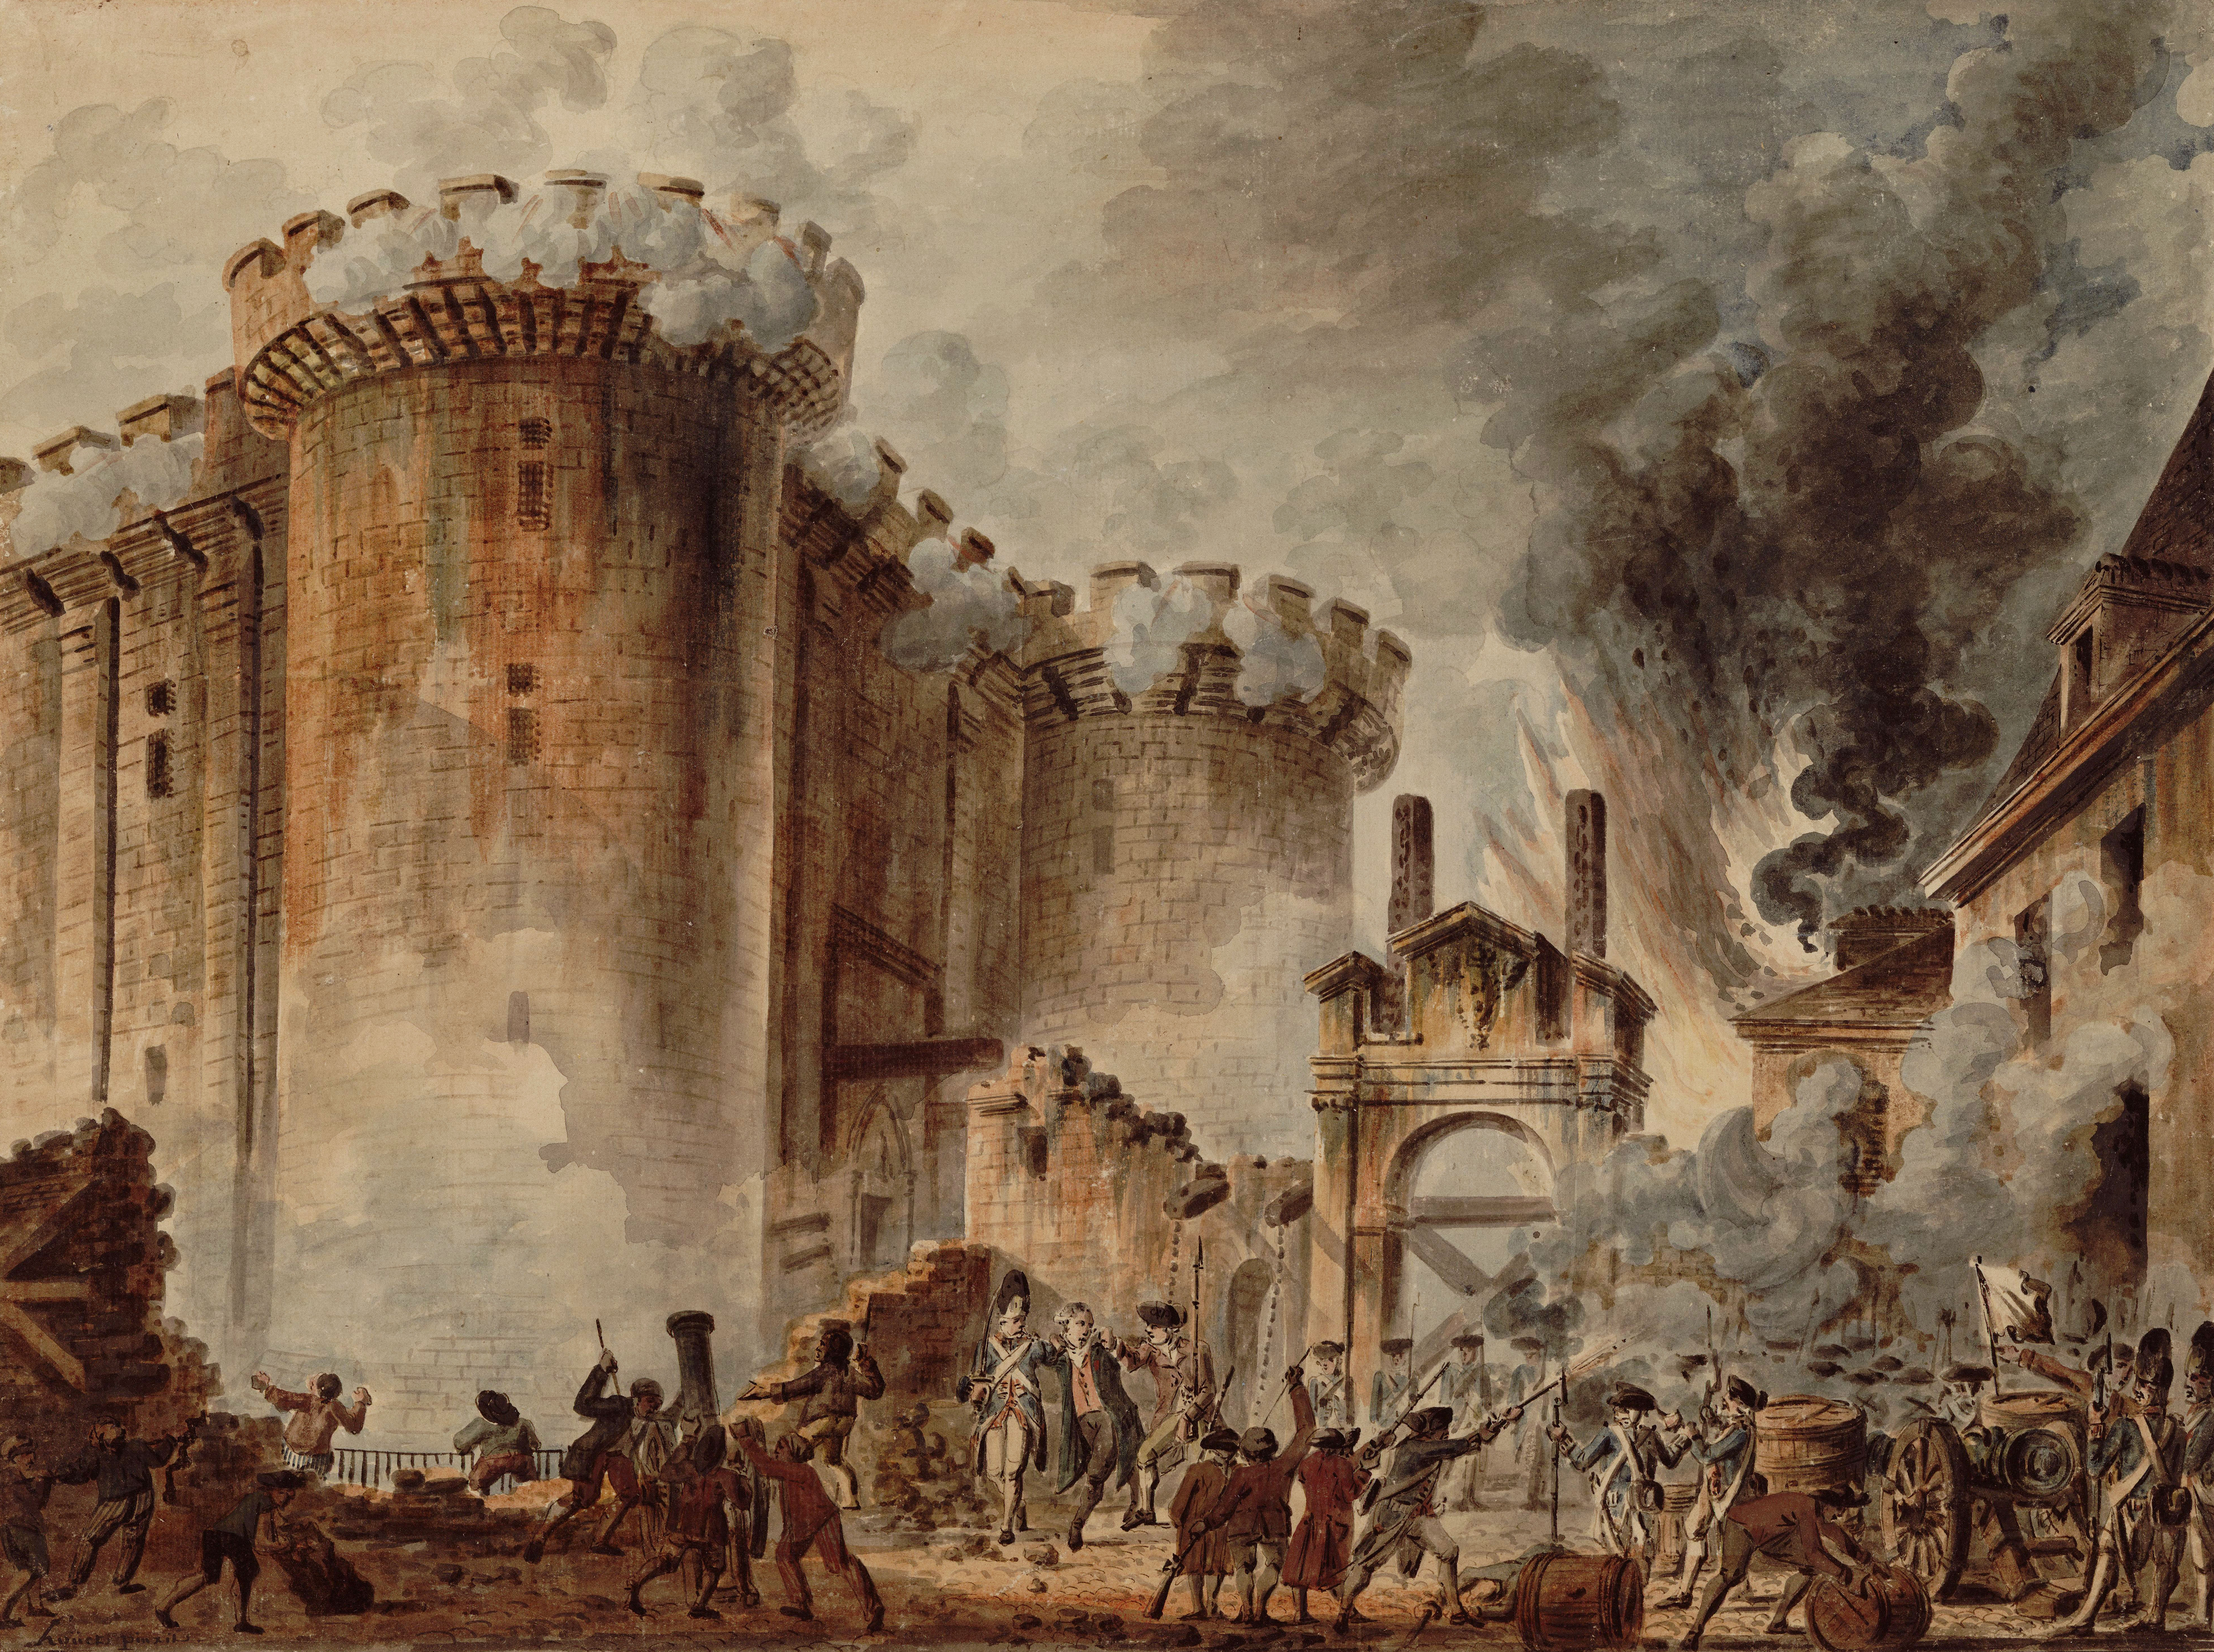 File:Prise de la Bastille.jpg - Wikipedia, the free encyclopedia